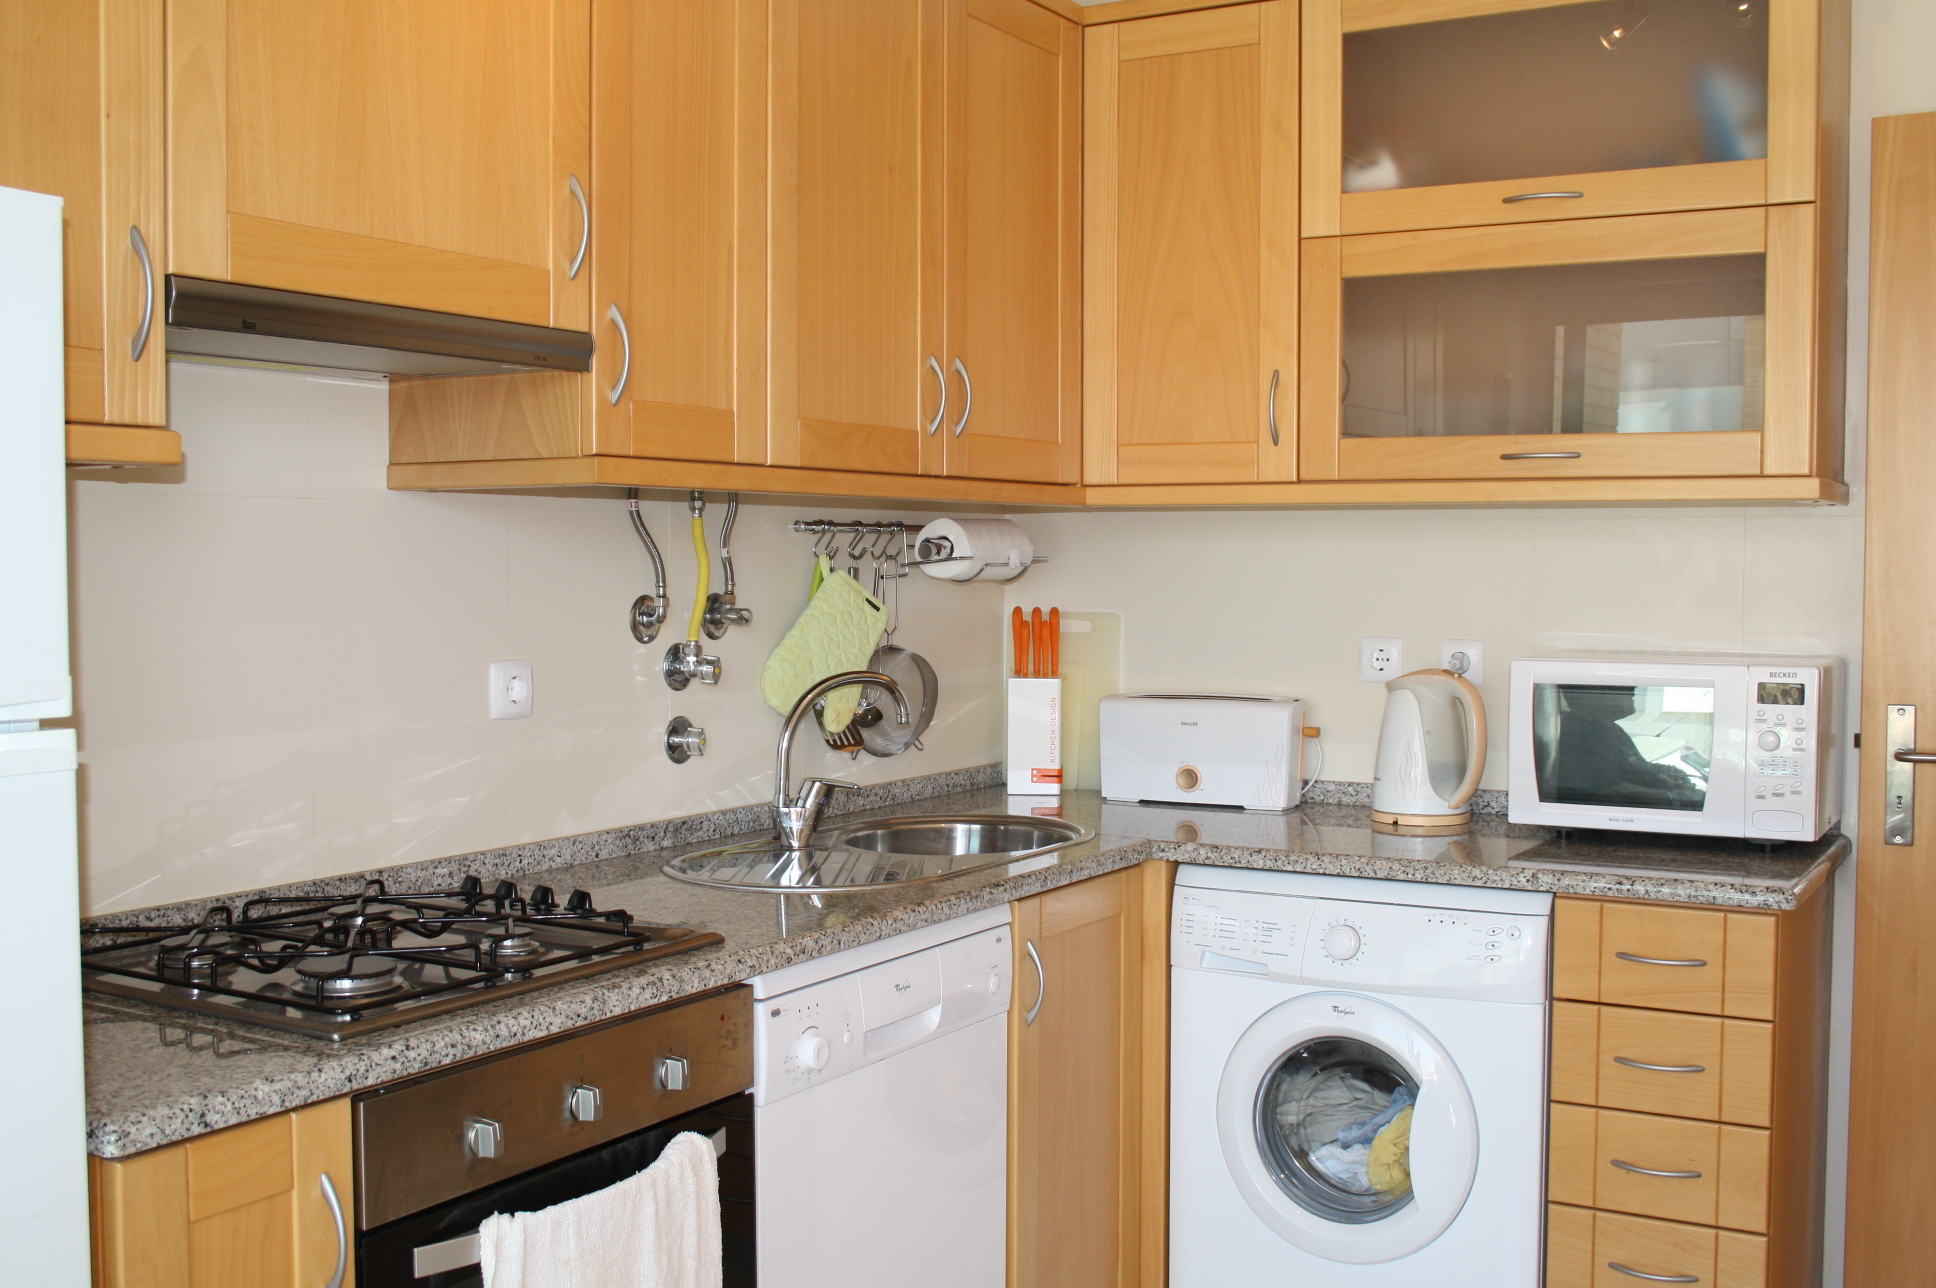 Rental Branqueria Albufeira AT035 Kitche